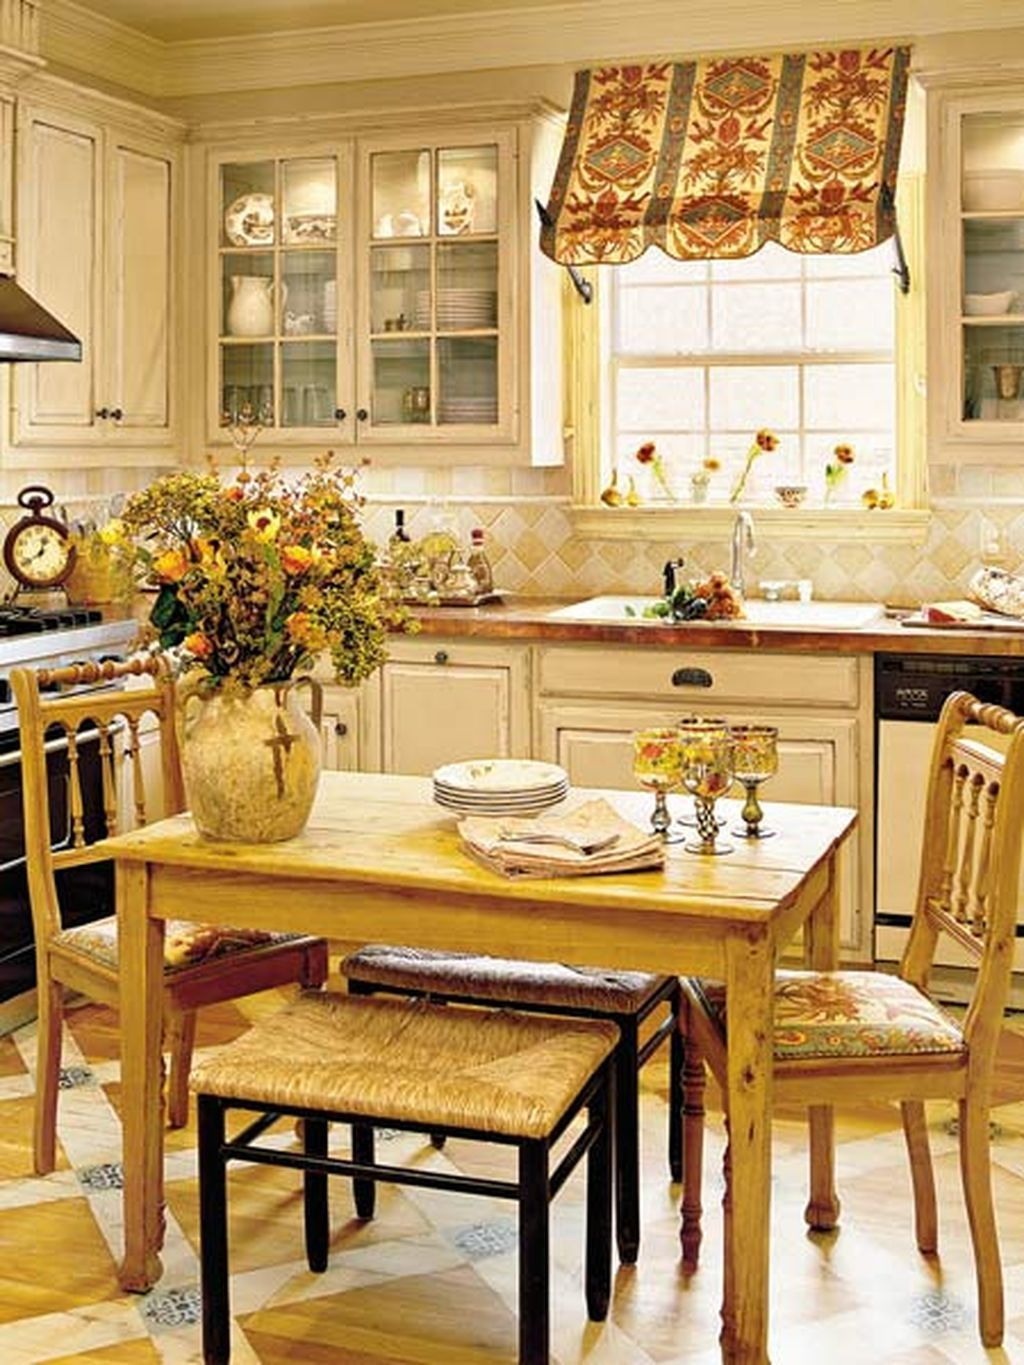 French Country Kitchen Budget cool french country kitchen ideas on a budget 34 | shabby chic decor